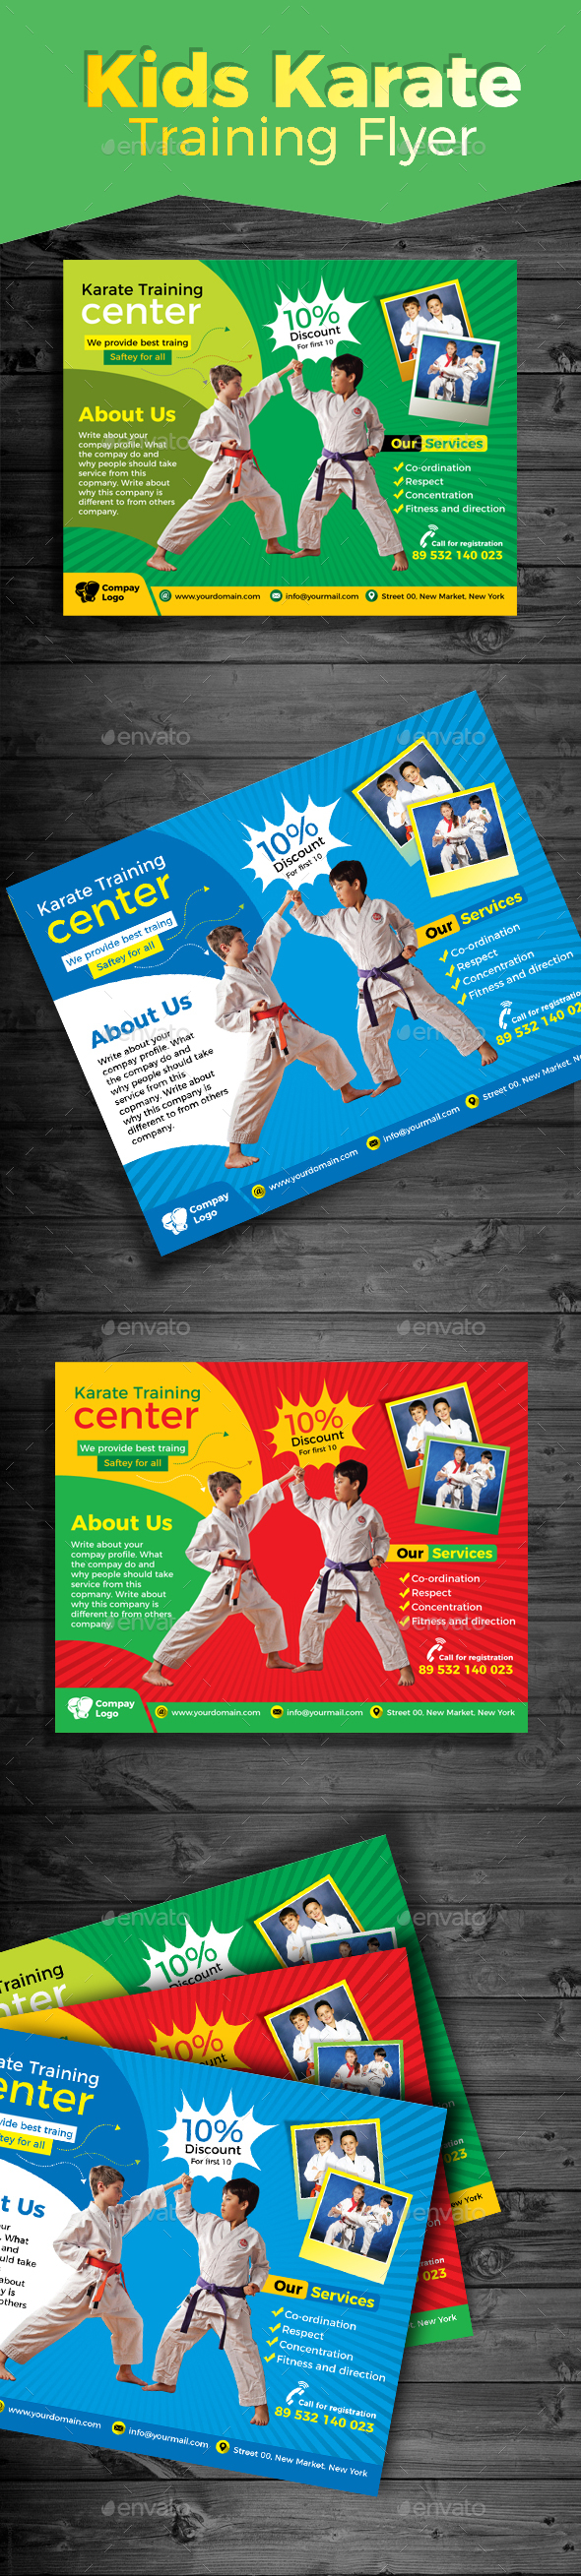 Kids Karate Training Flyer - Sports Events